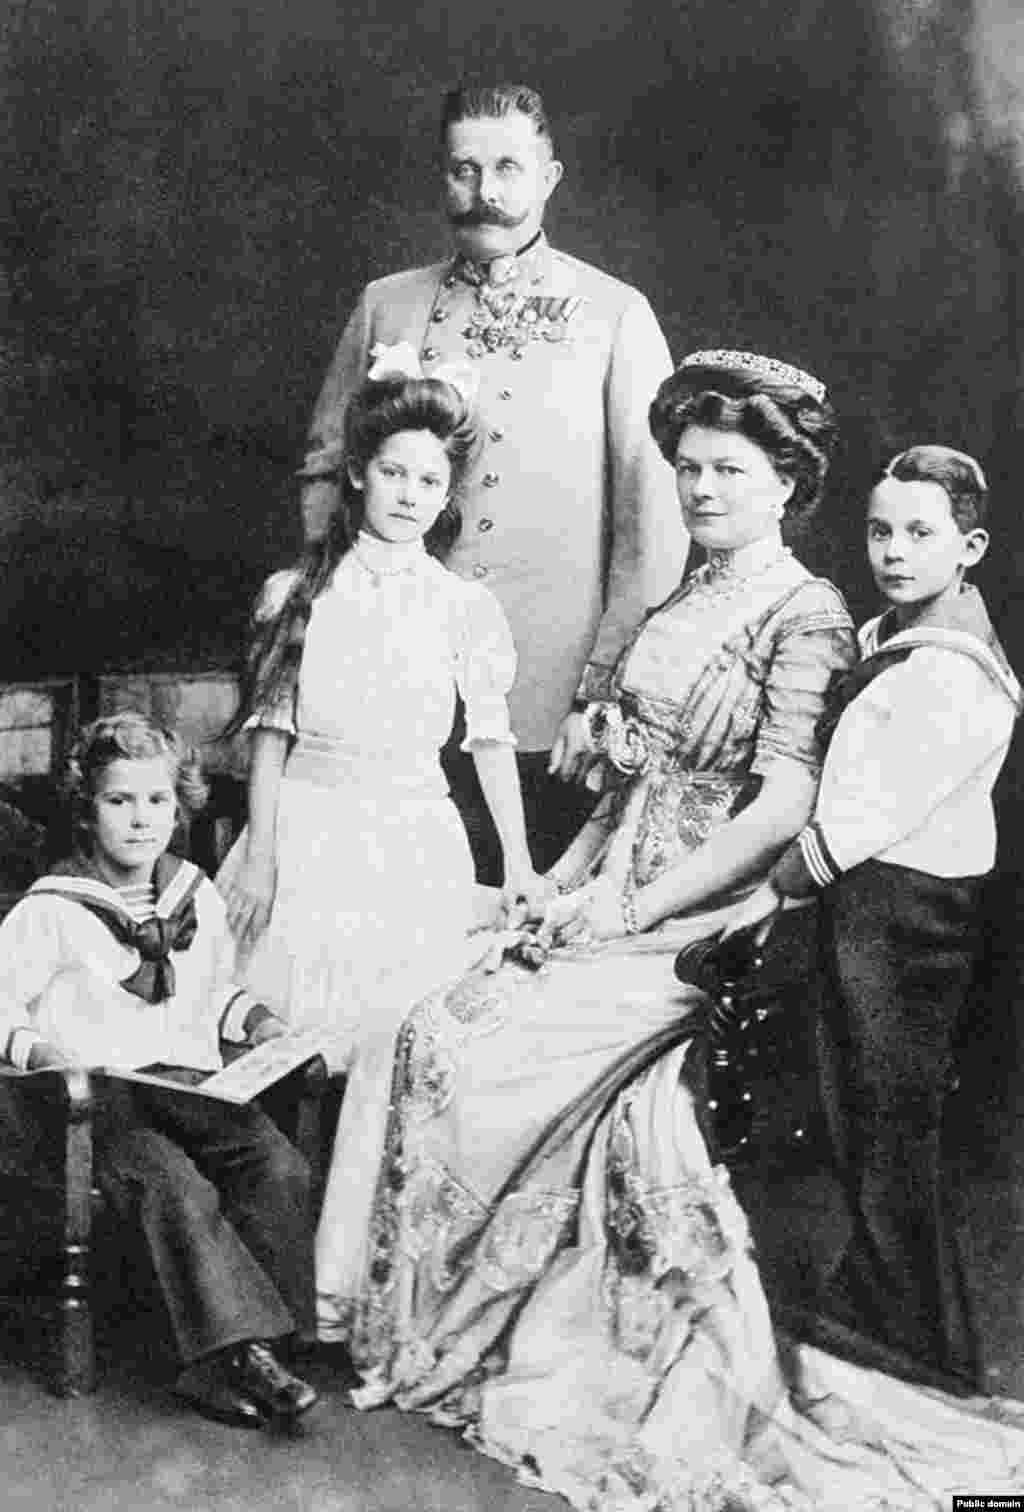 Archduke Franz Ferdinand with his wife Sophie, the Duchess of Hohenberg, and their three children, Princess Sophie, Maximilian, the Duke of Hohenberg, and Prince Ernst von Hohenberg in 1910. On June 28, the archduke was supposed to inspect Austro-Hungarian troops in Sarajevo with his wife. It was their wedding anniversary.